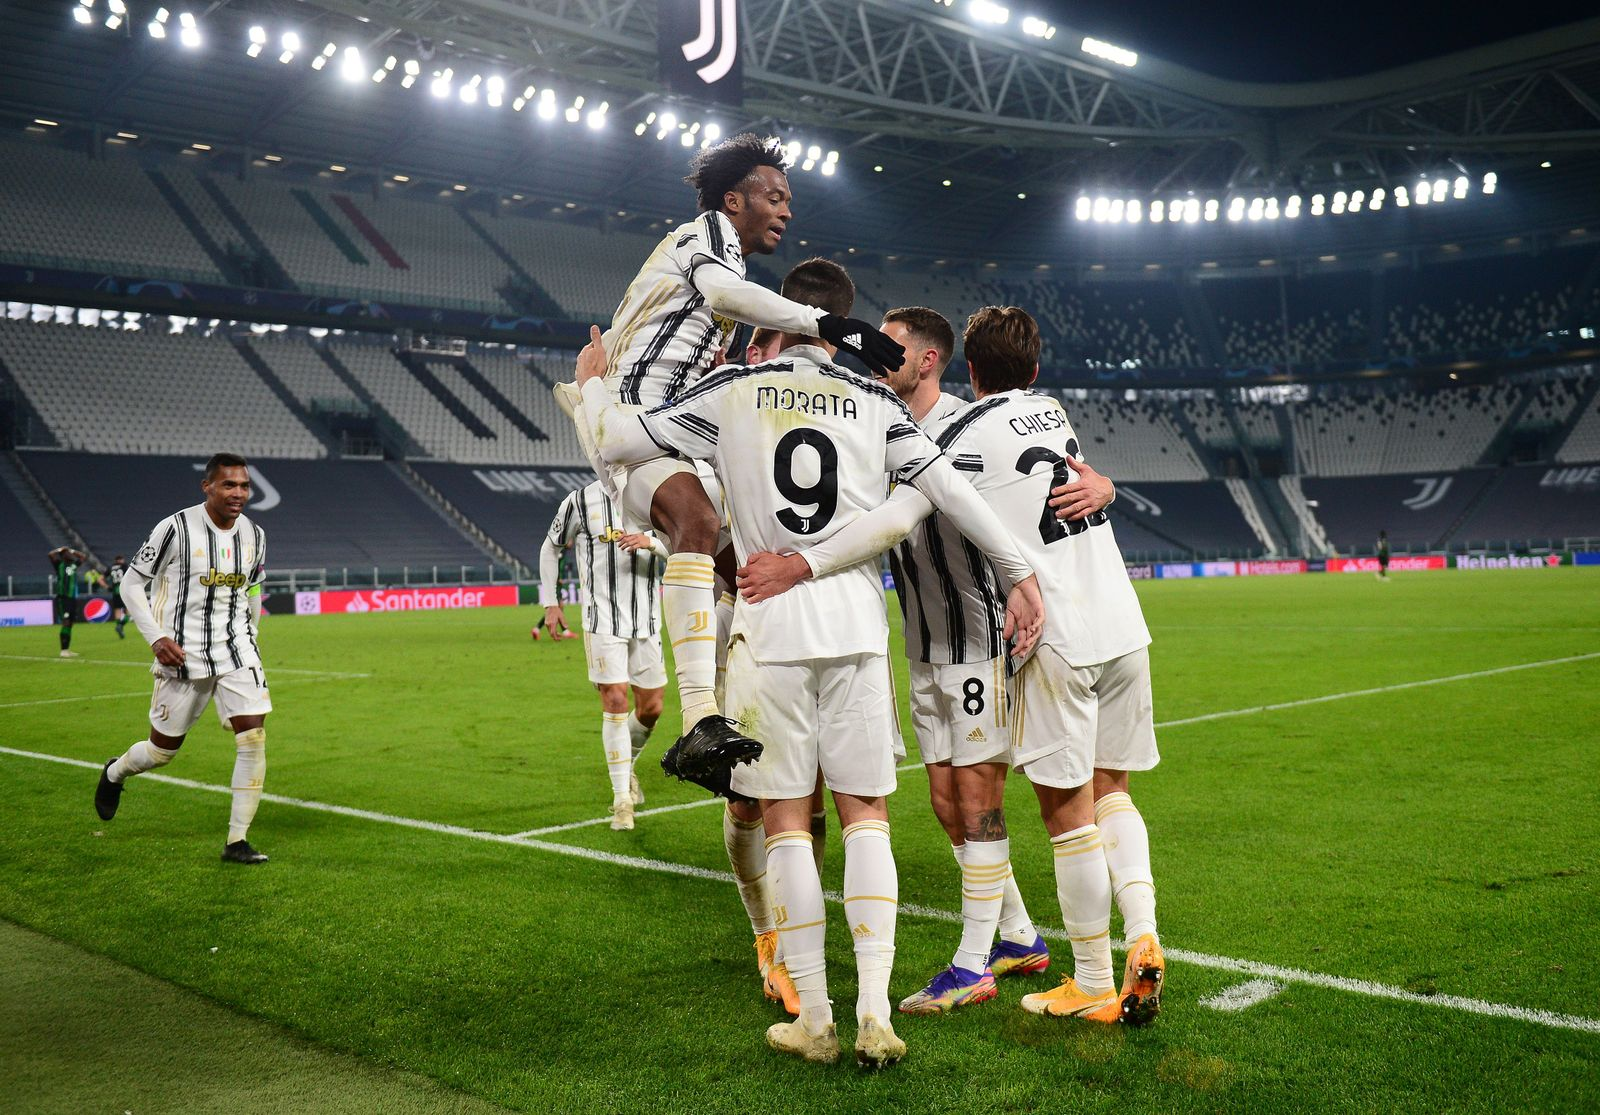 vgggilwrhfbpzm https www internationalchampionscup com juventus march into last 16 with 2 1 win over ferencvaros